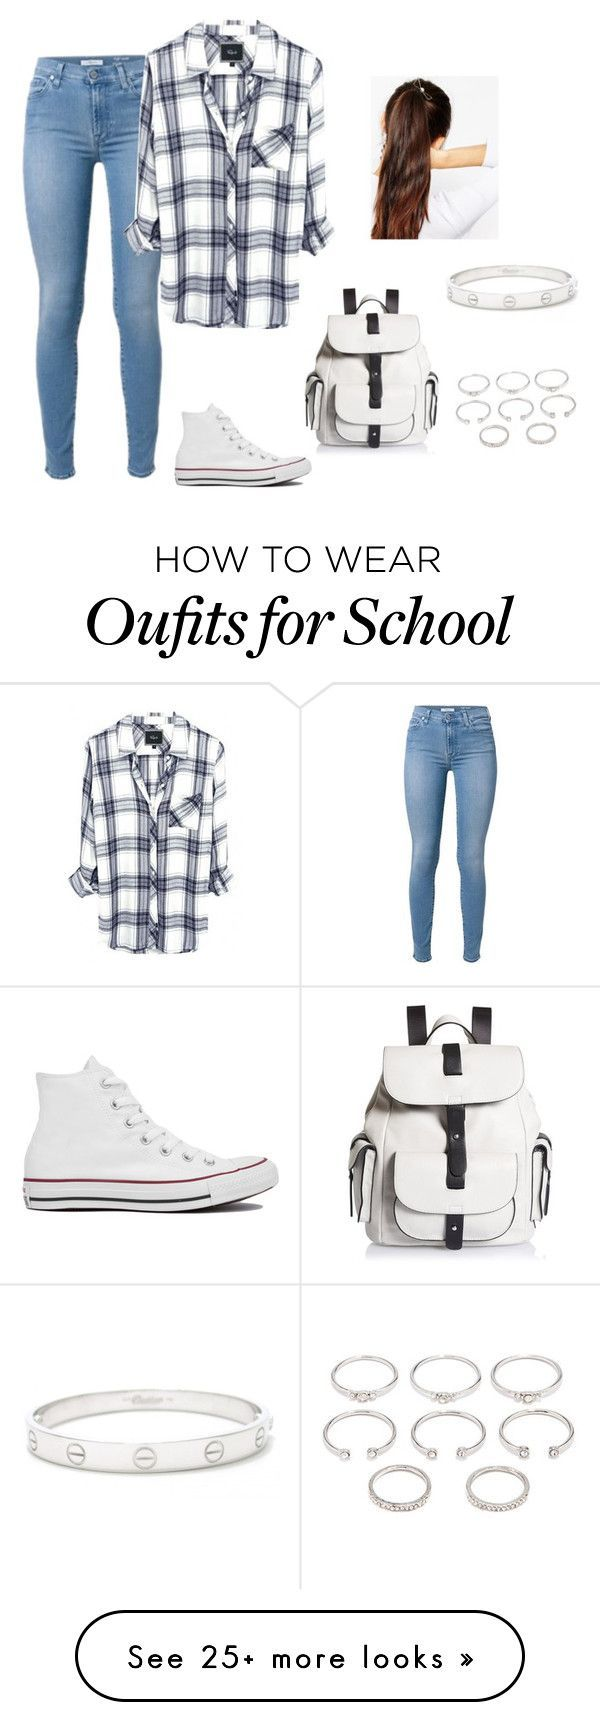 6 ways to include a classic shirt in school outfits